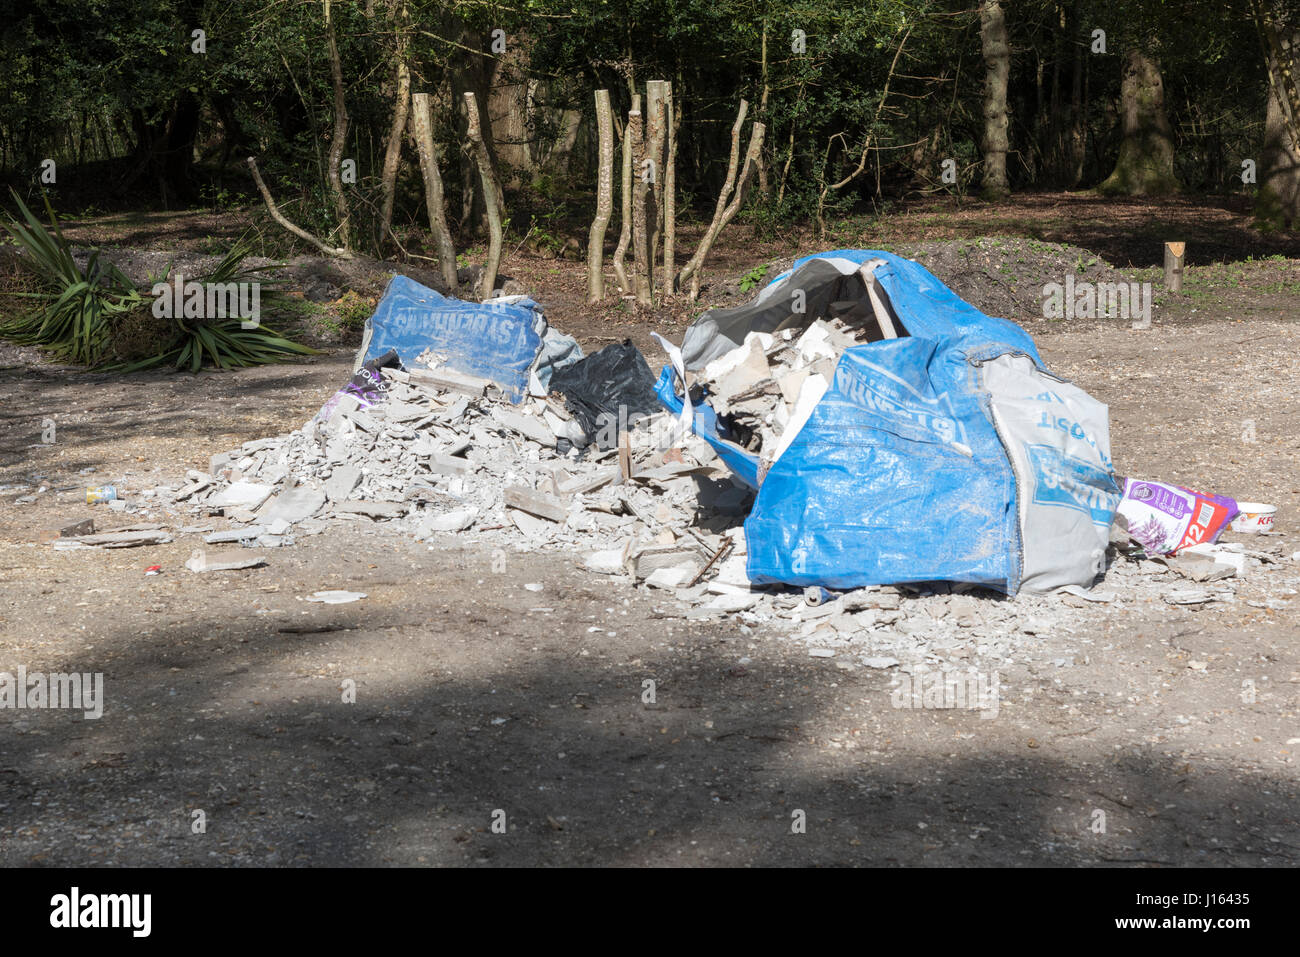 Fly tipping in the New Forest - Stock Image